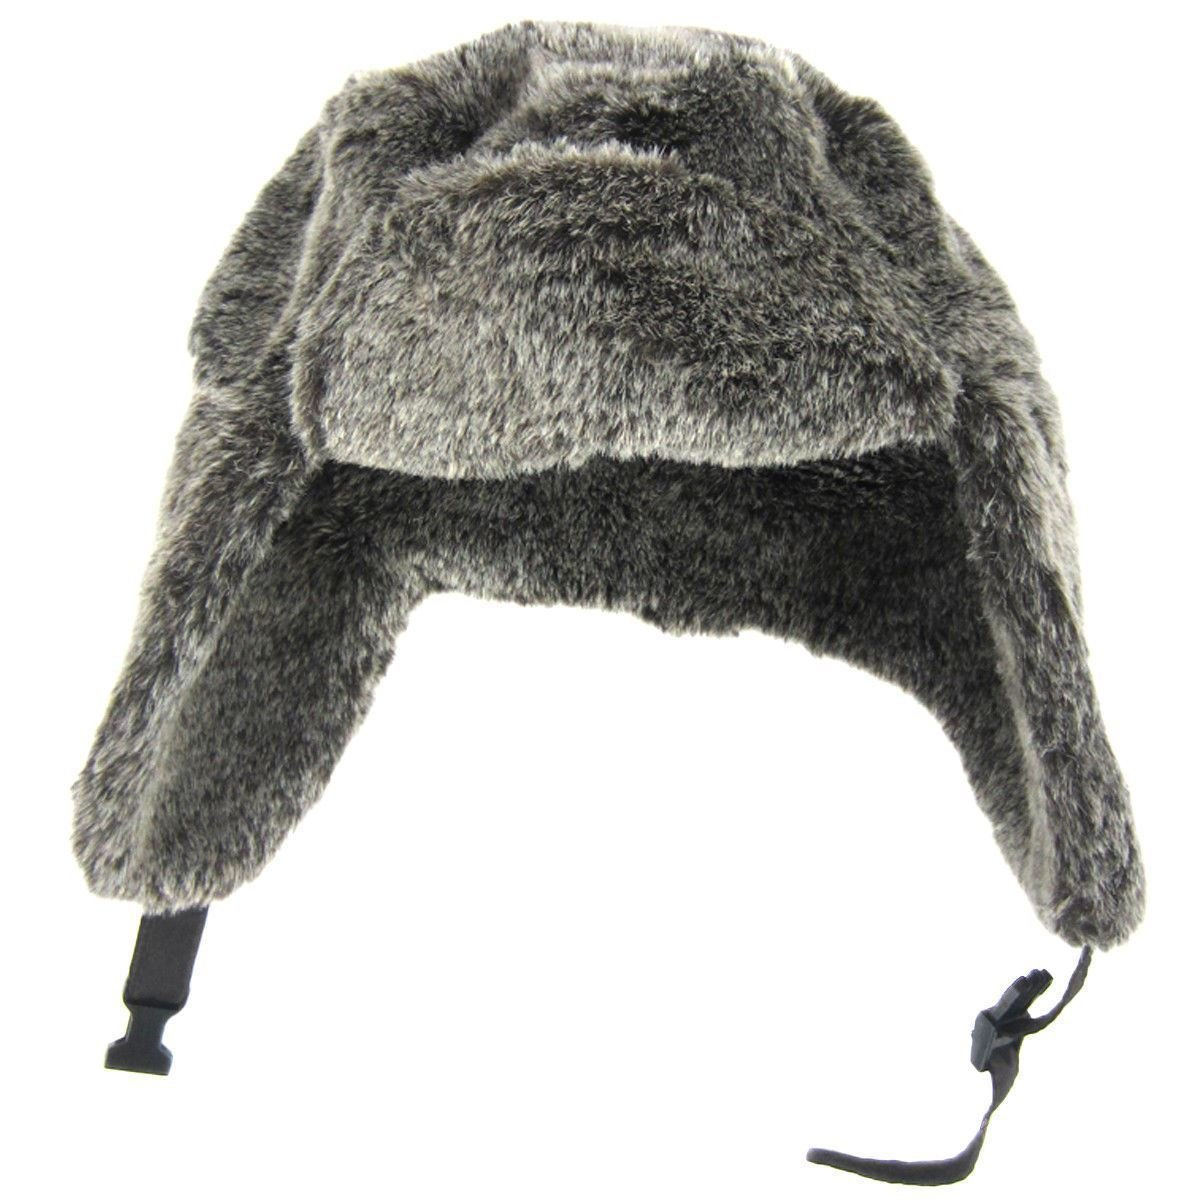 Details about NWT Dorfman Pacific Co Design Handmade Faux Fur Russian  Ushanka with Buckle S M 588f34217ff